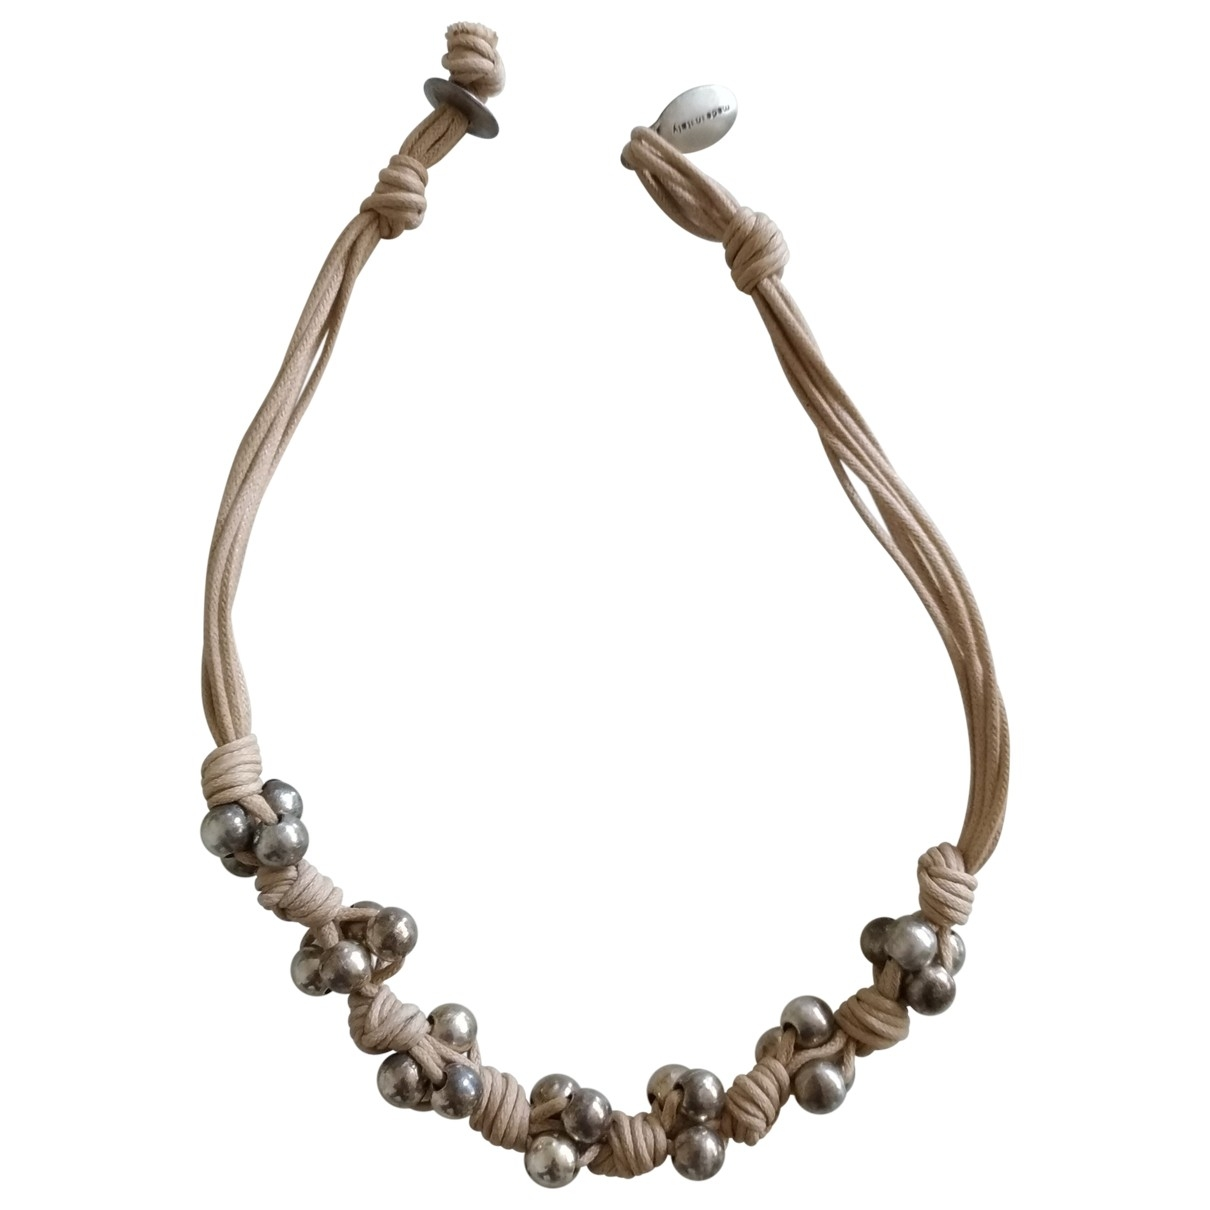 Non Signe / Unsigned Motifs Ethniques Kette in  Beige Metall